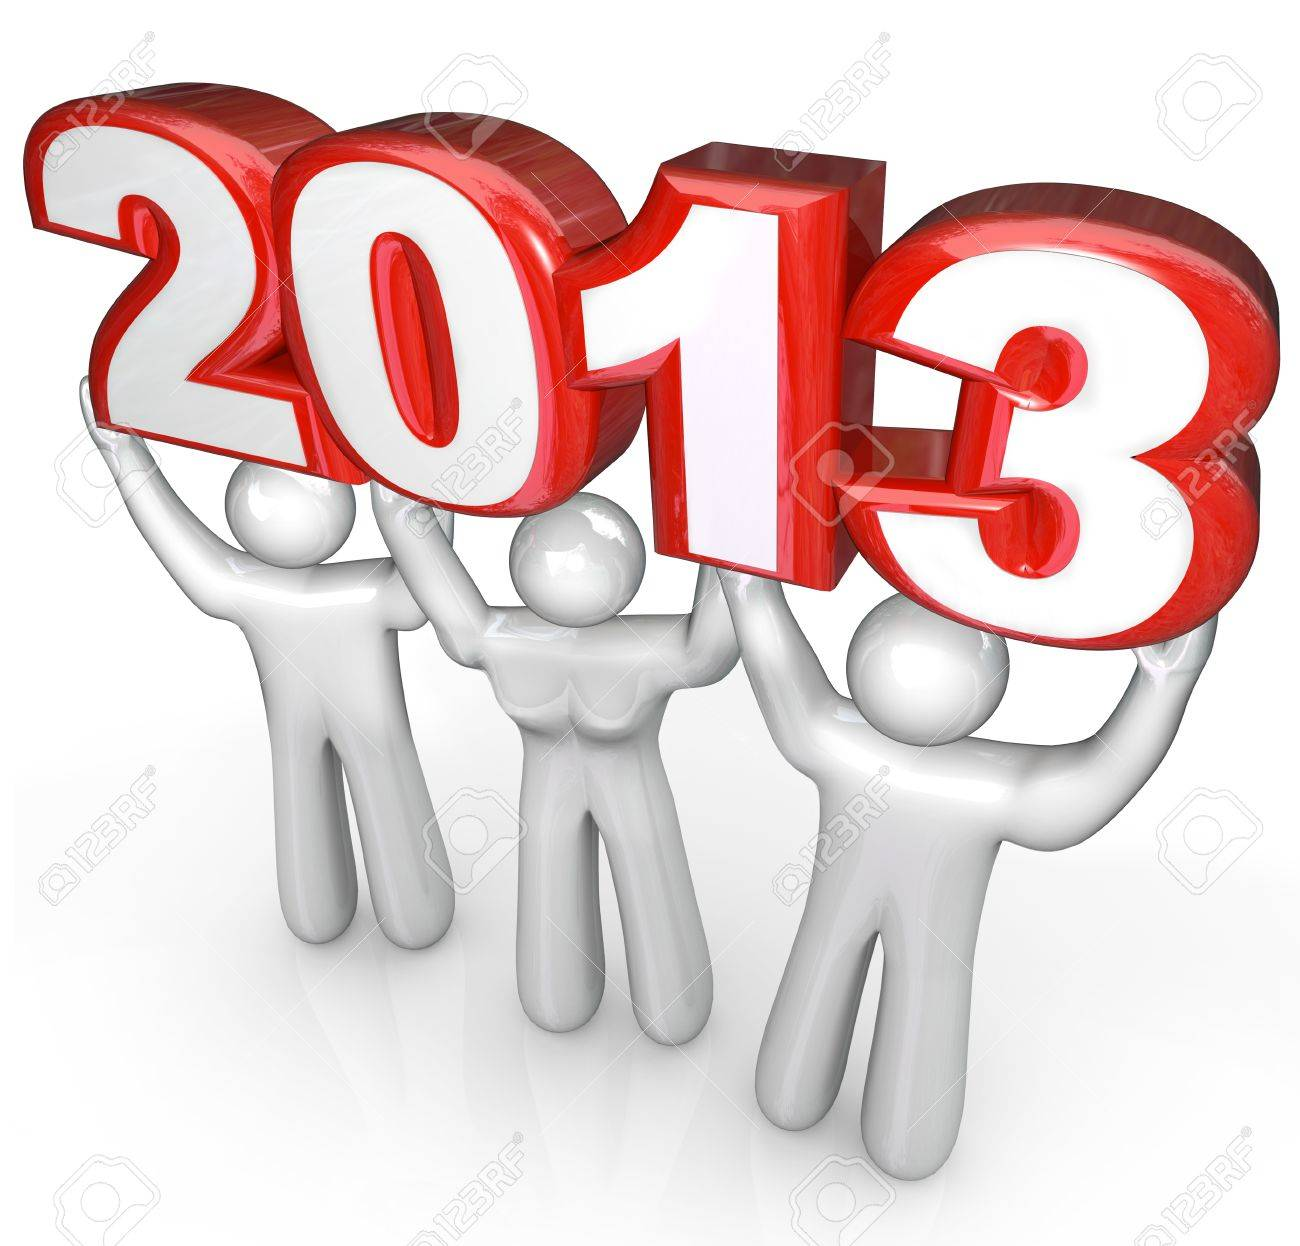 A team of people celebrate the new year holiday by lifting the number 2013 in a party or celebration Stock Photo - 16261443